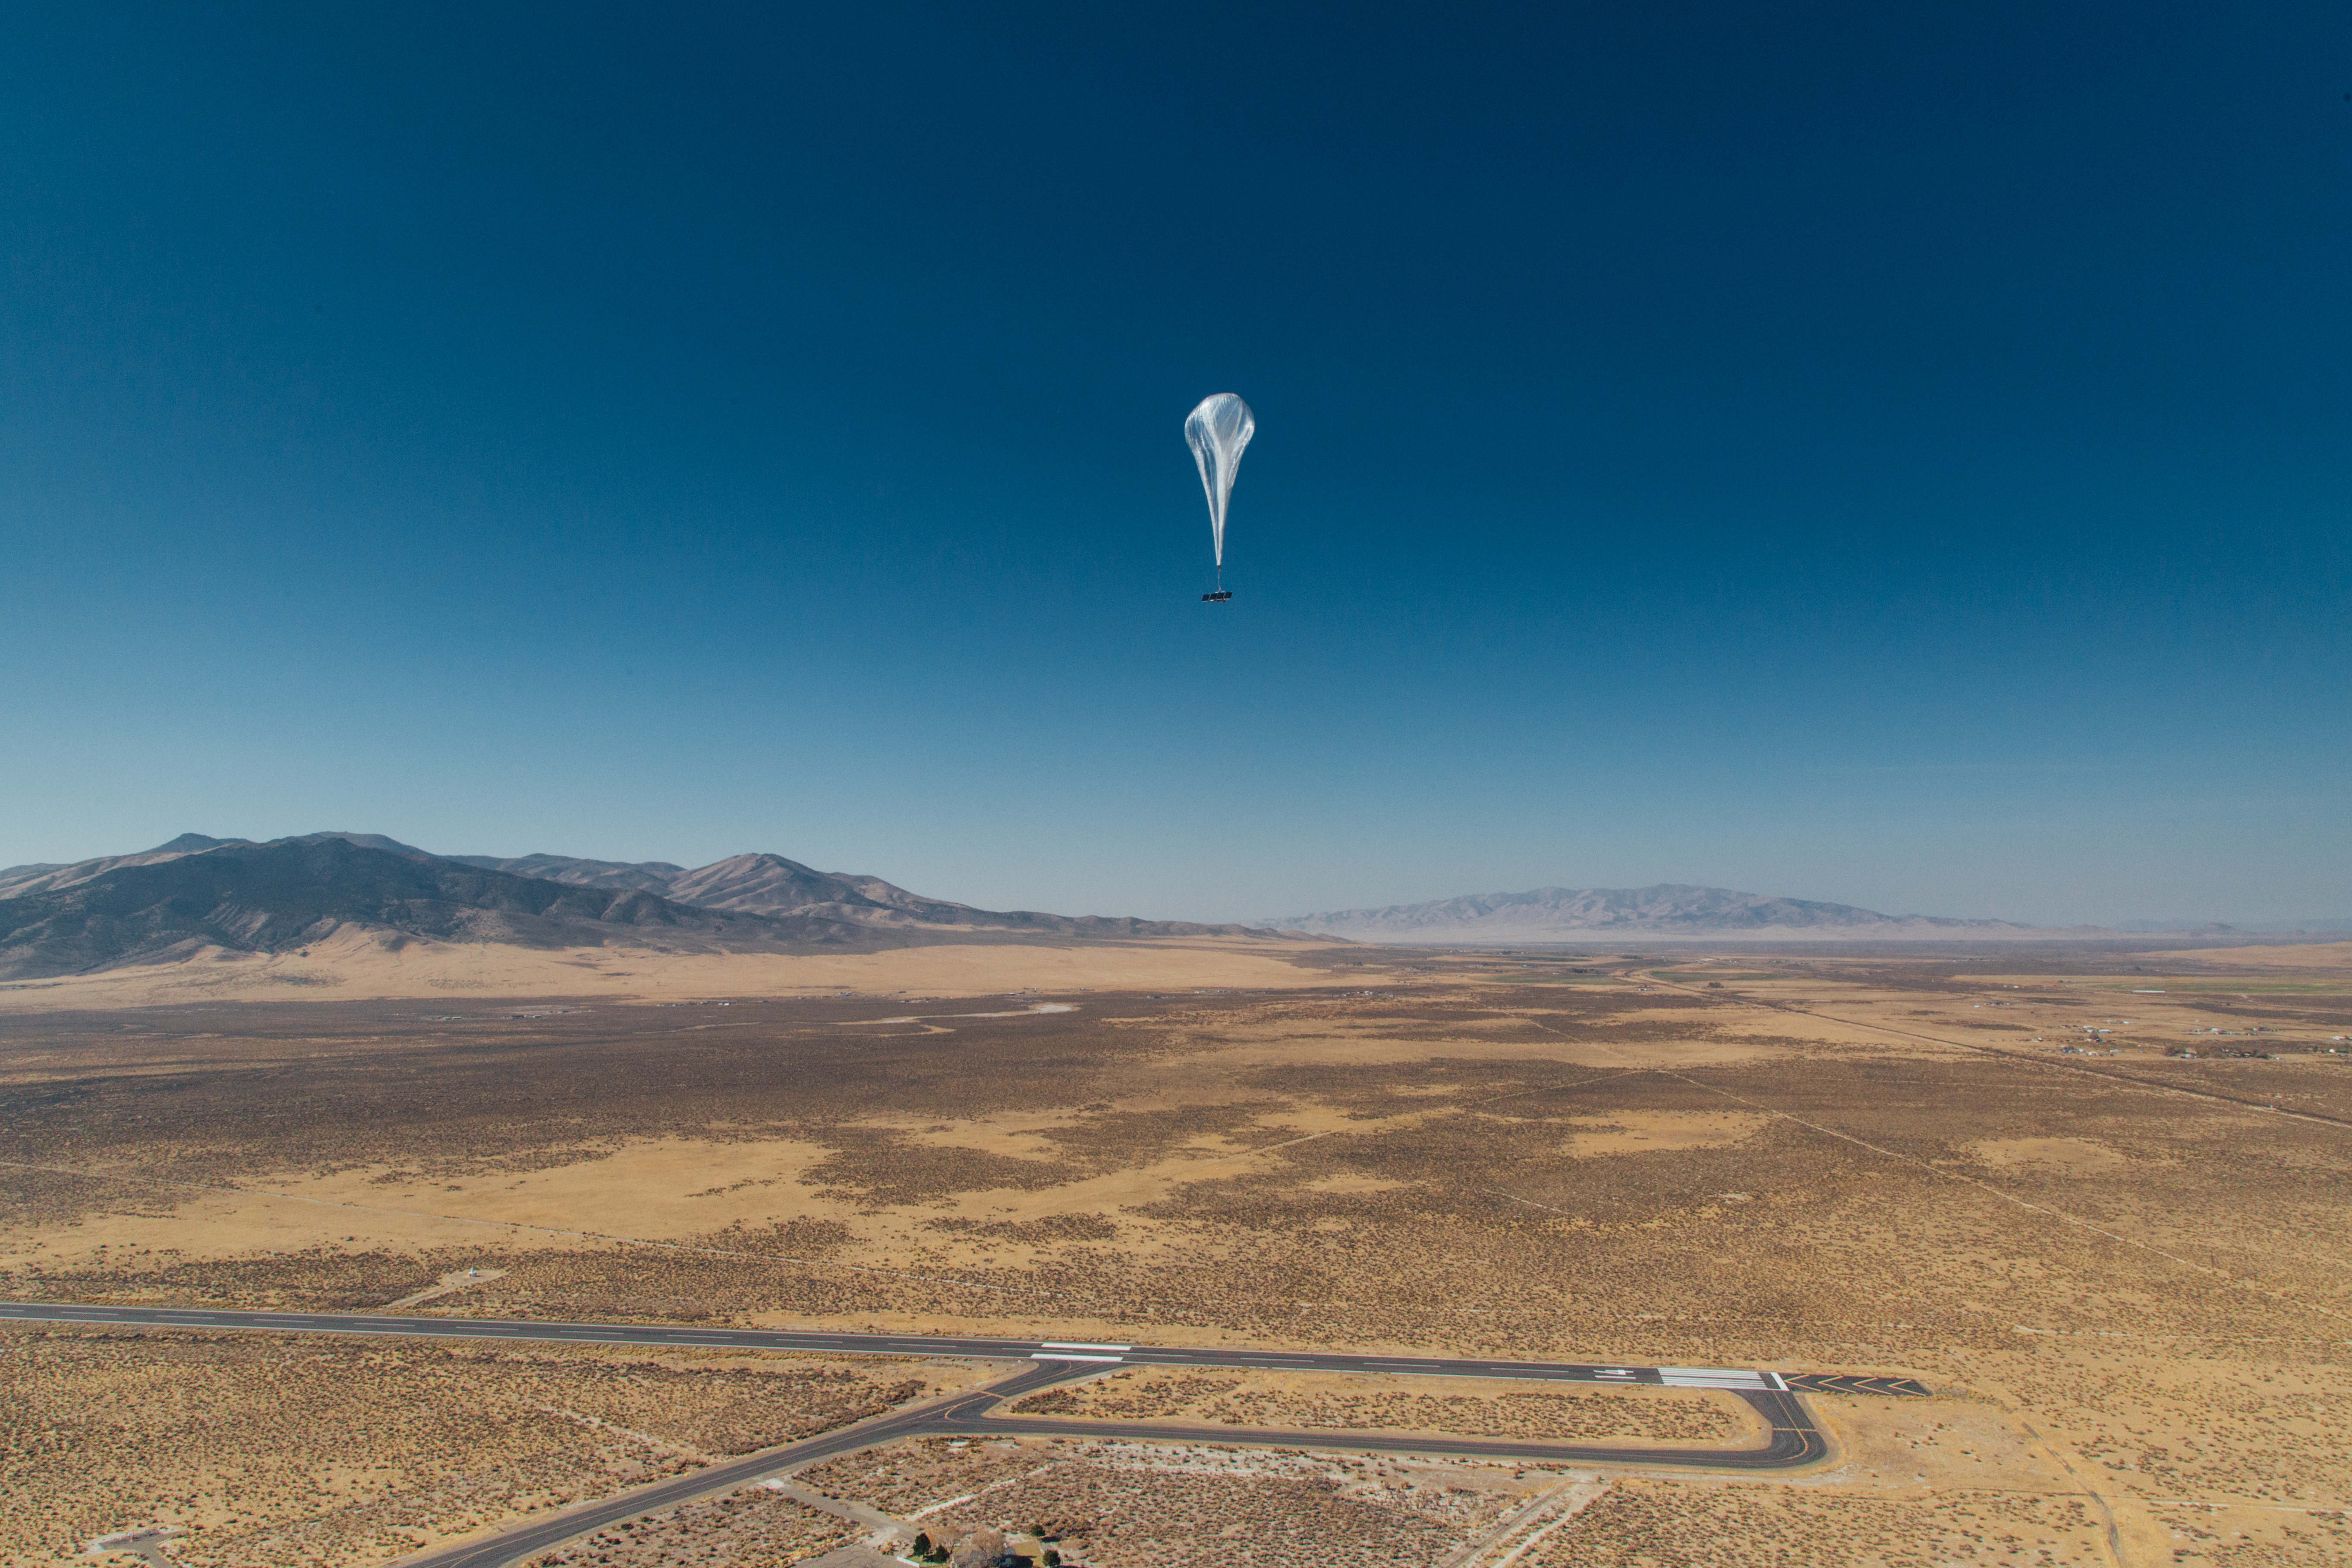 How do those internet balloons over Puerto Rico work?